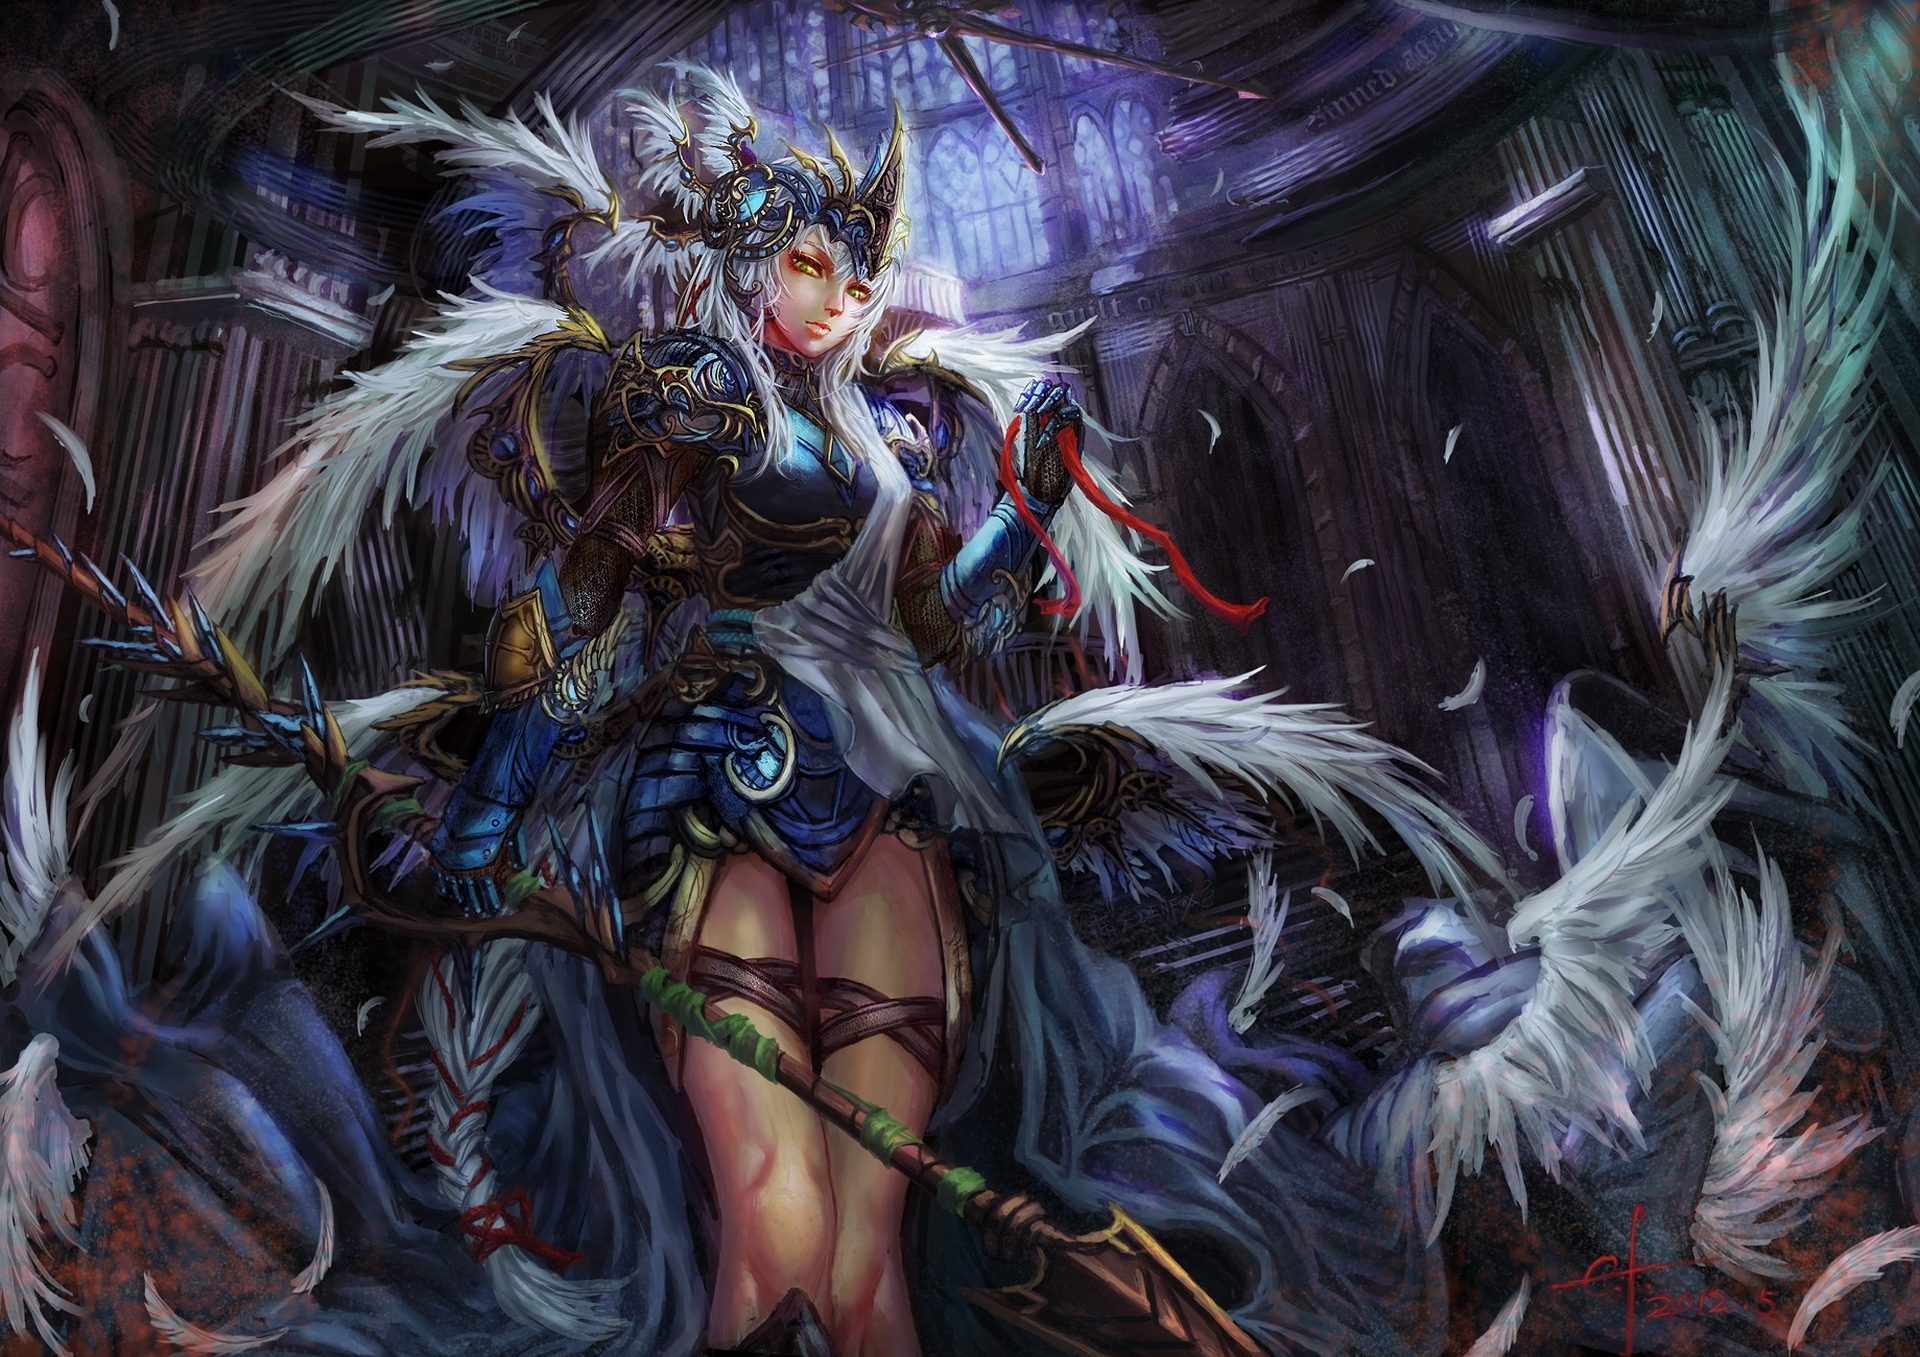 Anime Inspired Hd Fantasy Wallpapers For Your Collection: Women Warrior HD Wallpaper